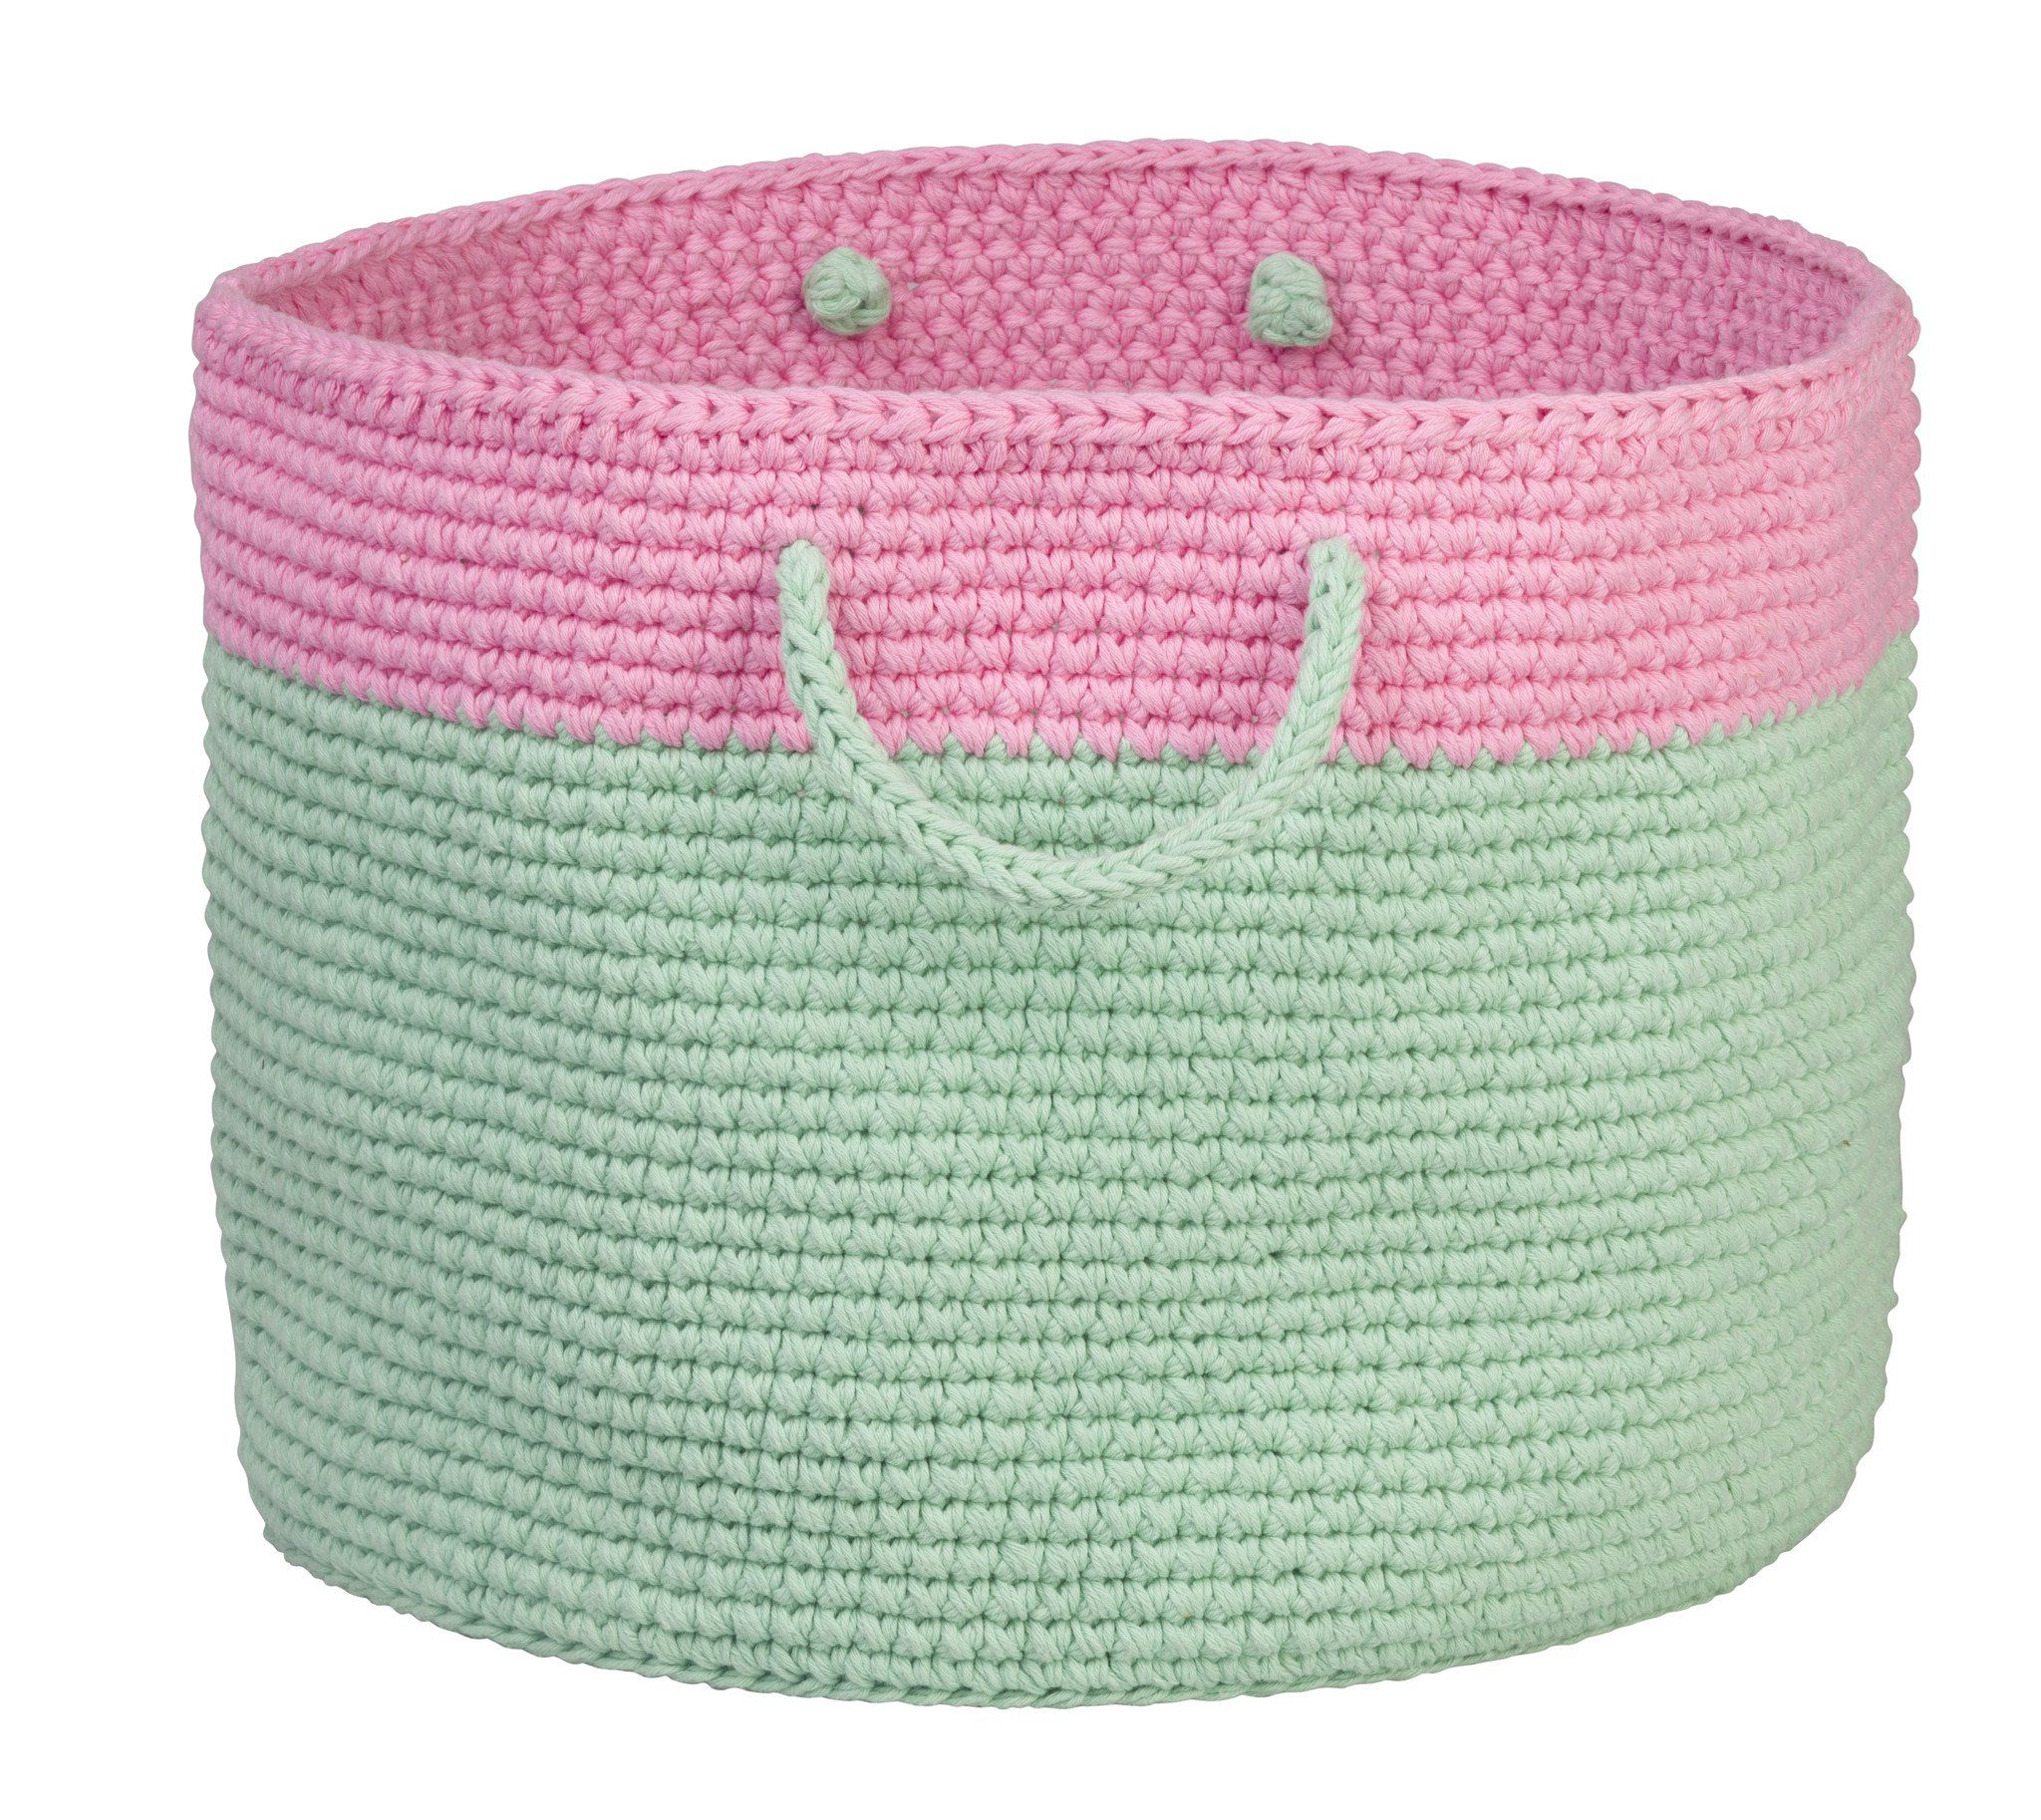 Pink & Mint Crochet Storage Basket - Baskets - La De Dah Kids - Naiise